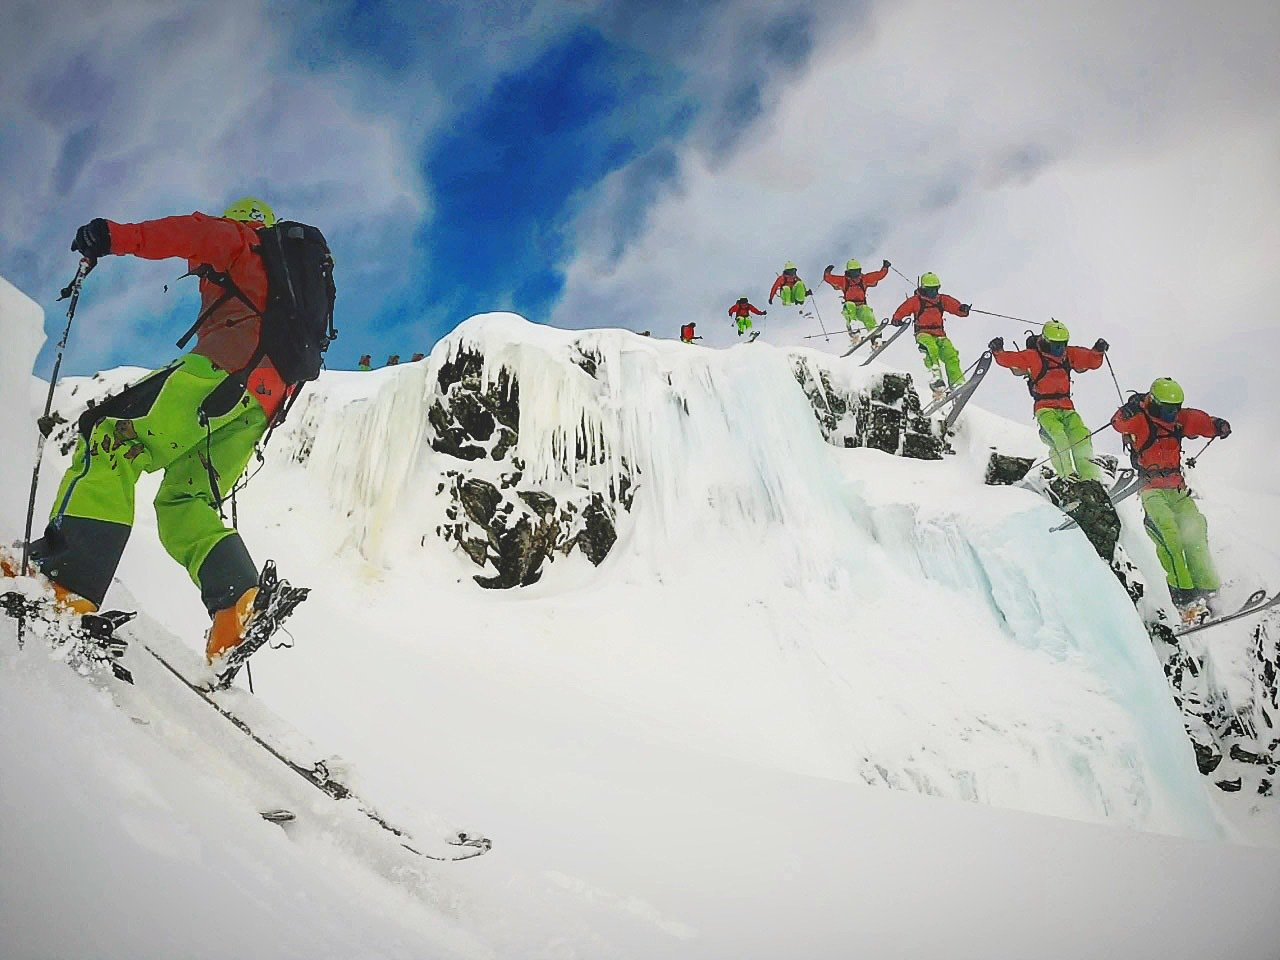 Dropping Icewall